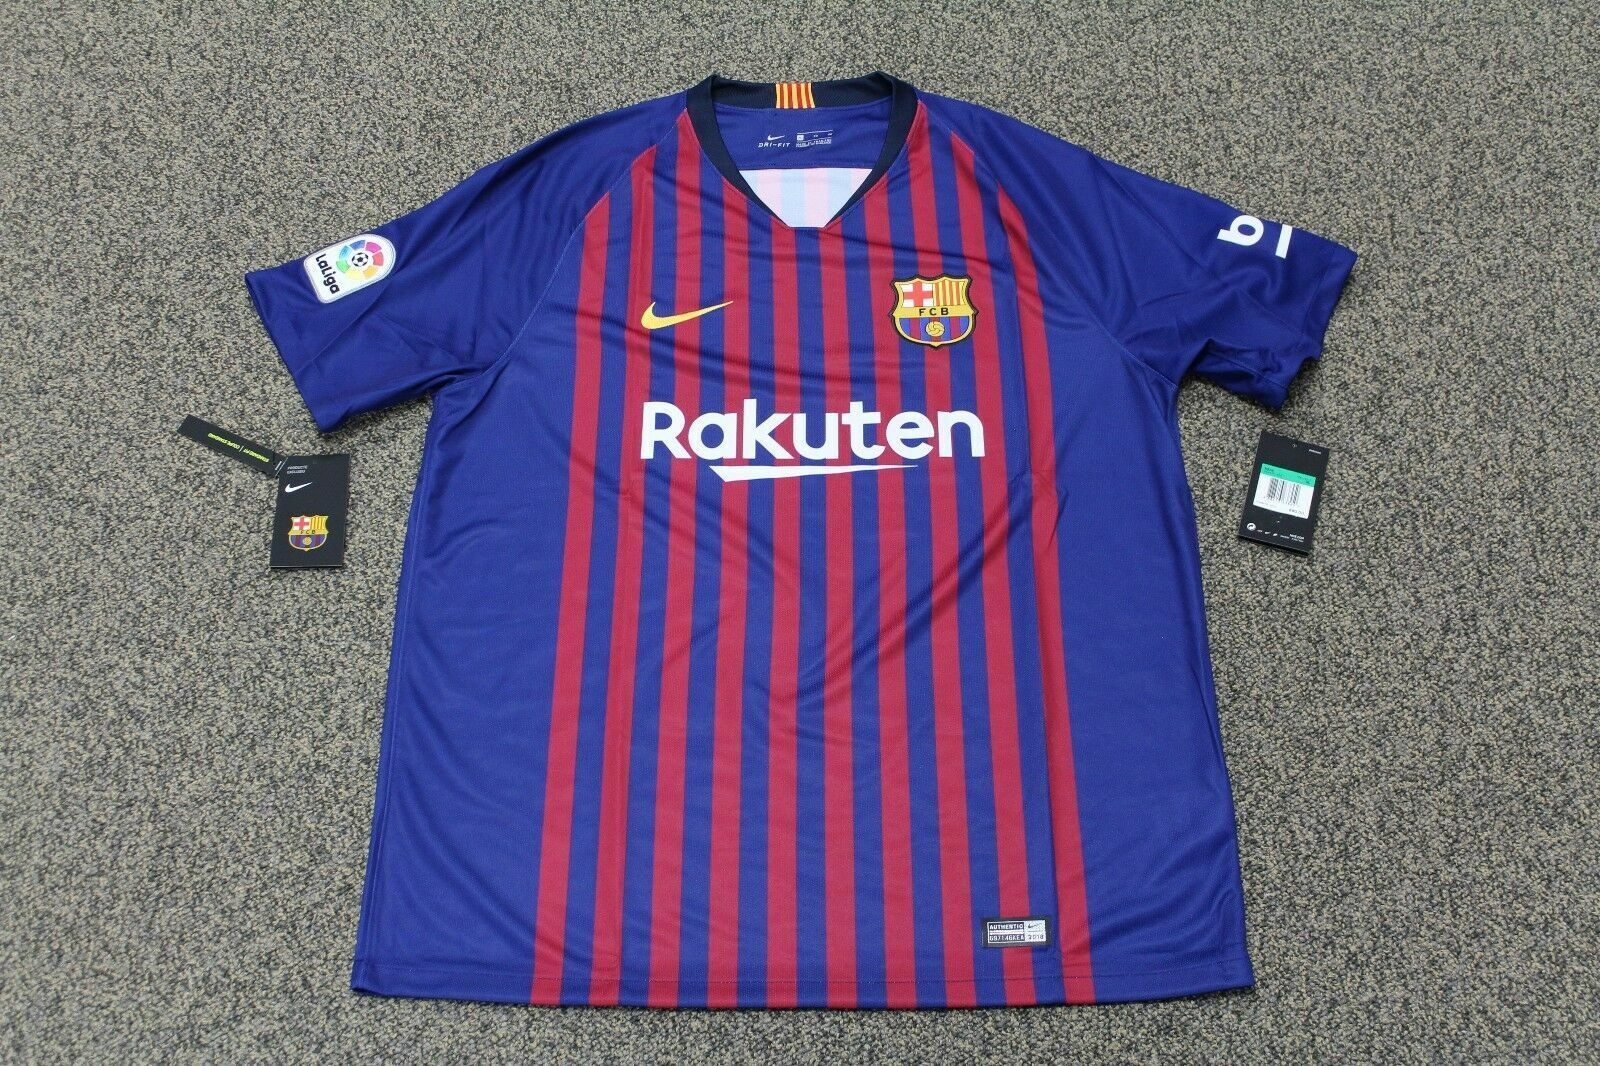 quality design c2e76 0a6c2 Nike FC Barcelona Jersey 2019 #9 Luis Suarez Name and Number Size XL Only